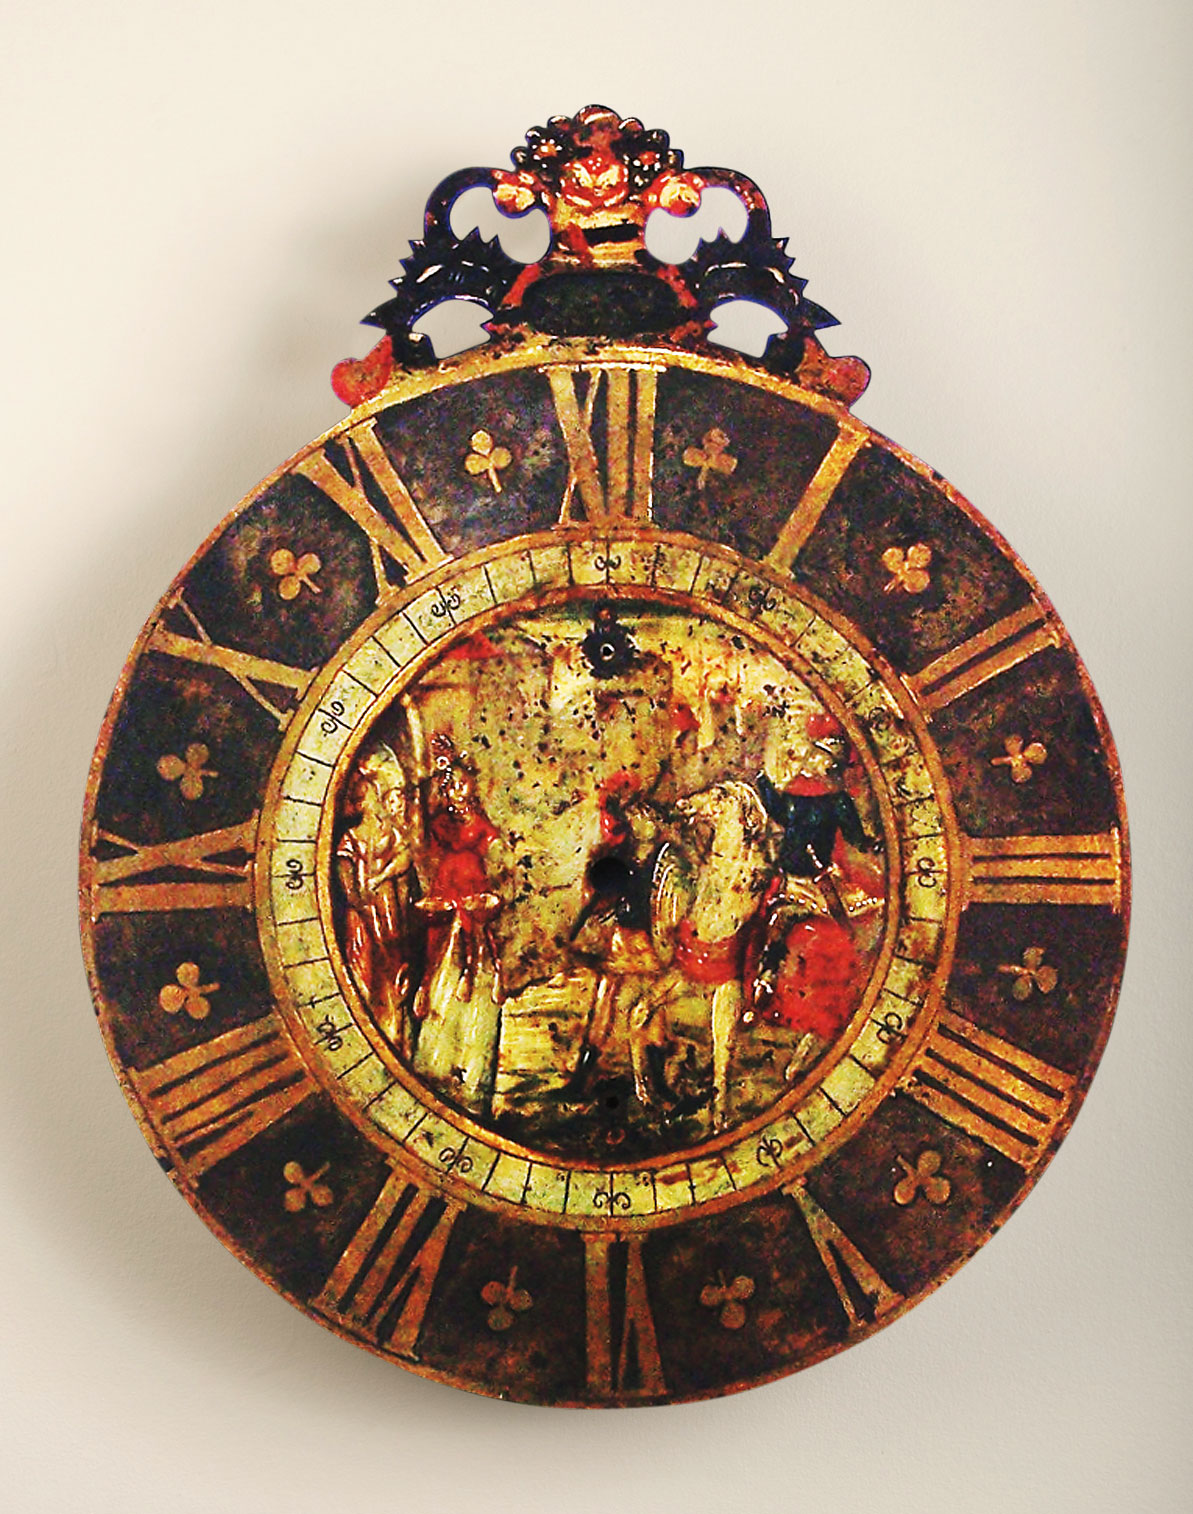 Dial of a clock made ca. 1800, depicting the story of Jephtha (found in Judges 11:20–40). This clock would have been a reminder to Mennonites to not swear oaths. Background photo: Mandtler clock made in 1899, depicting the story of Hezekiah (found in 2Kings 19:9–14). Courtesy of the Kauffman Museum.